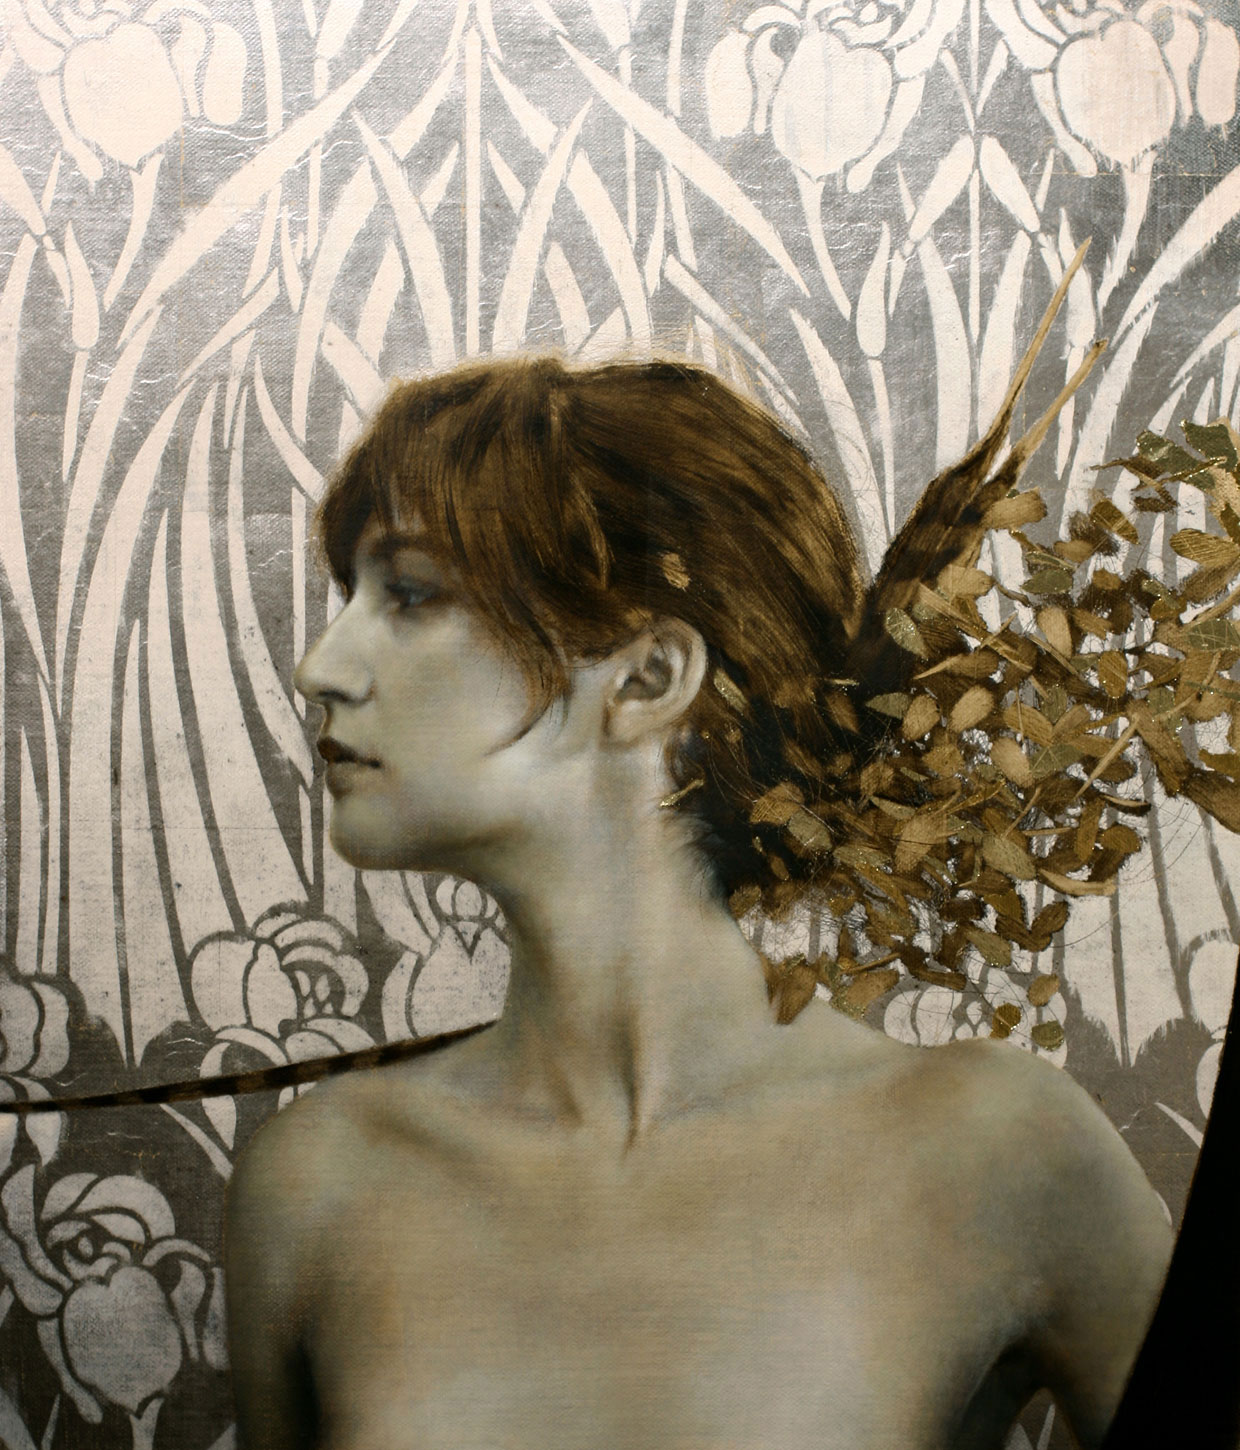 Afela's Nature.   16 x 14 inches.  Oil, gold and silver leaf on linen.  Private collection.